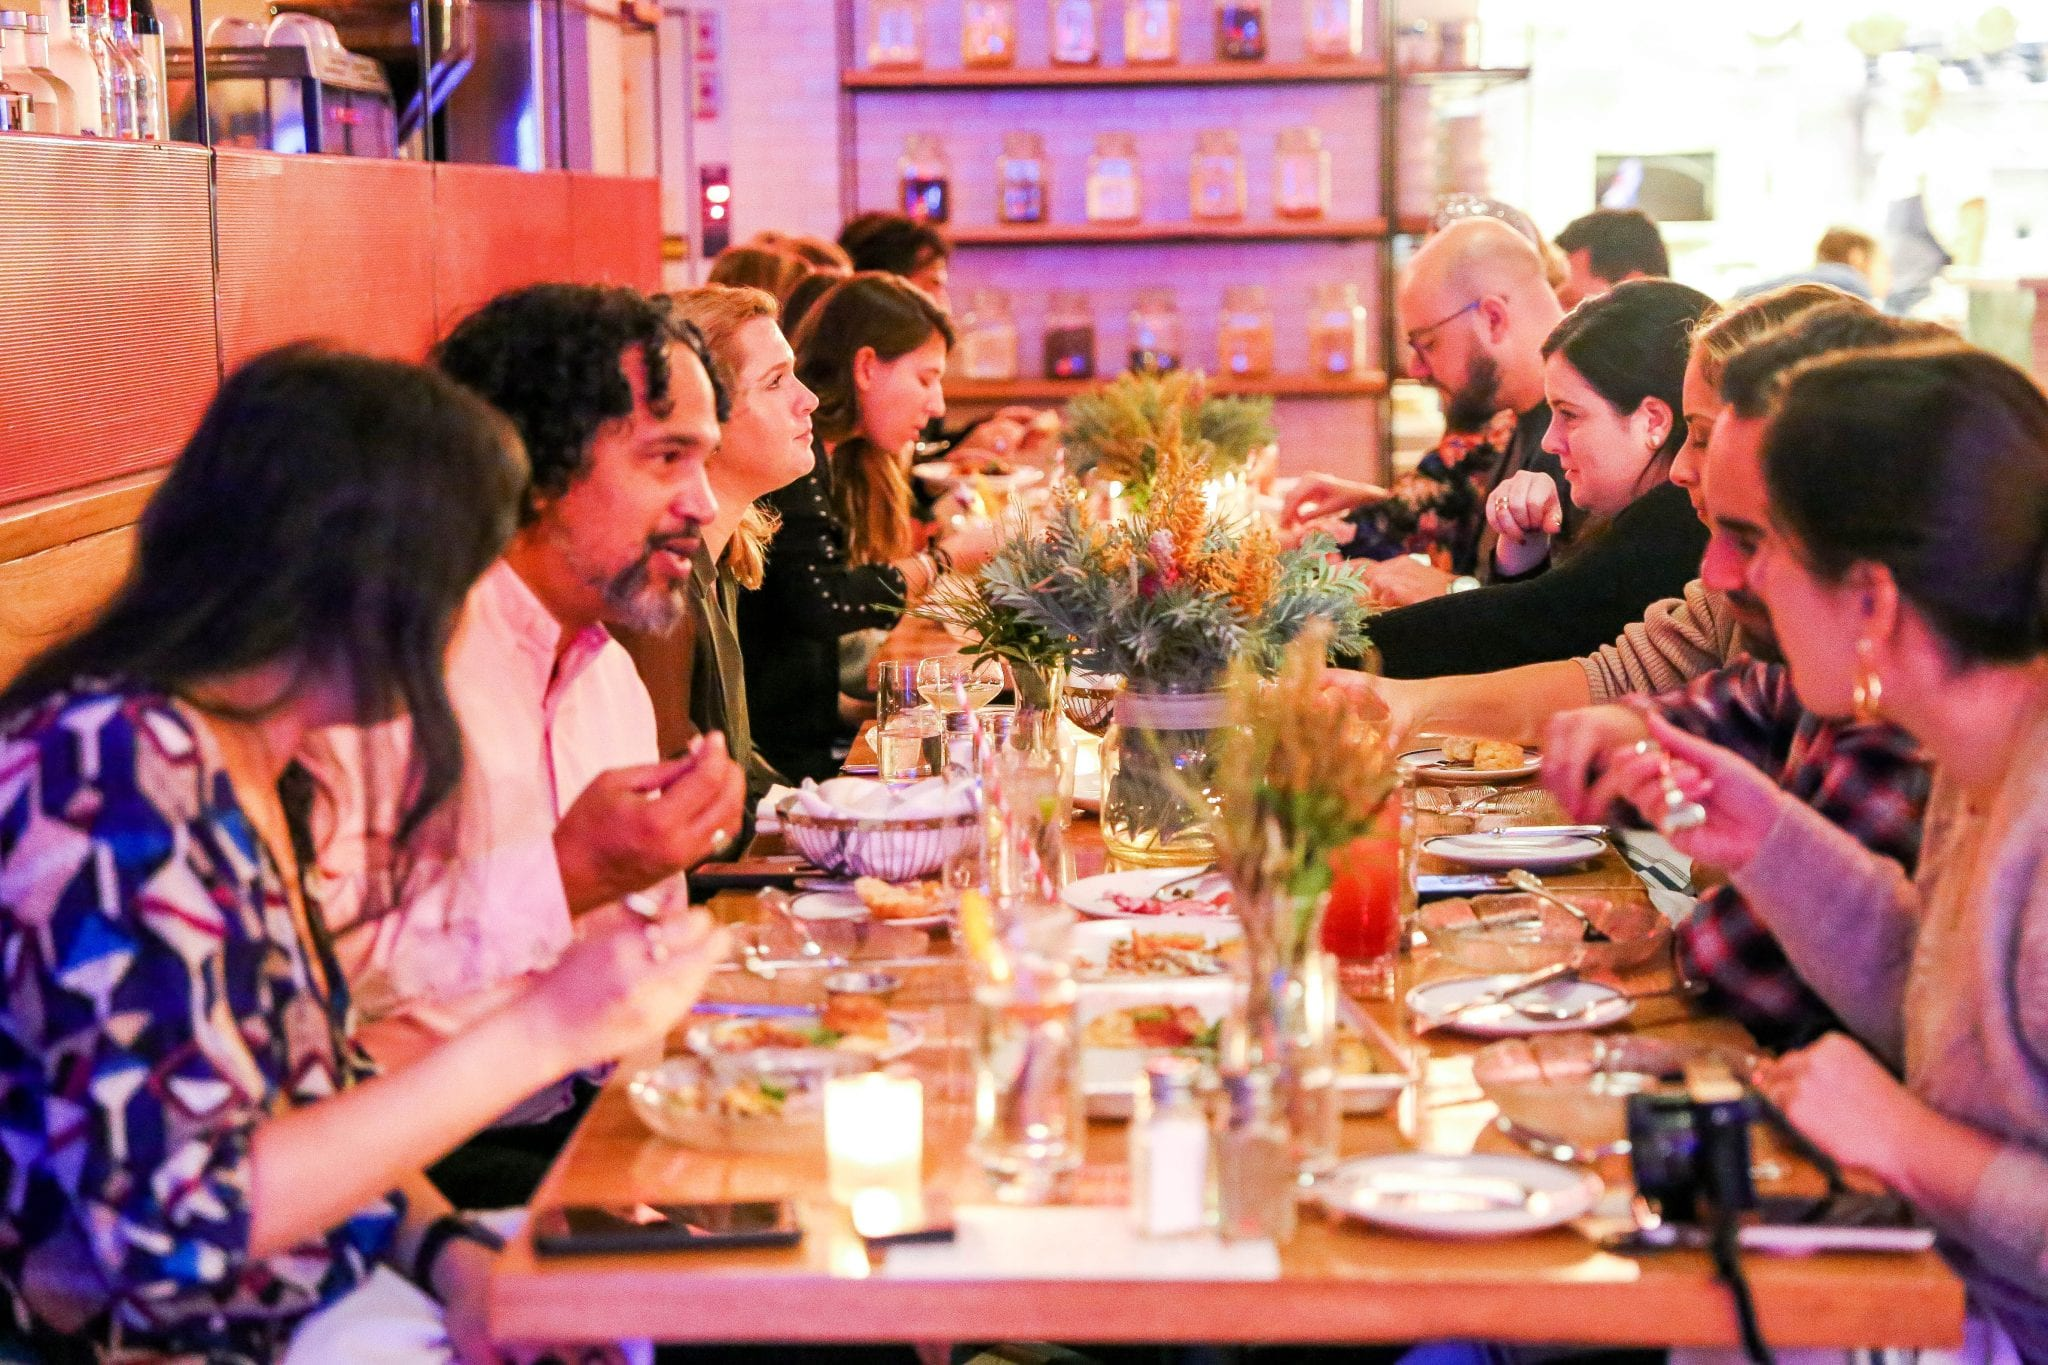 Big-Group and Private Party Dining Options in NYC